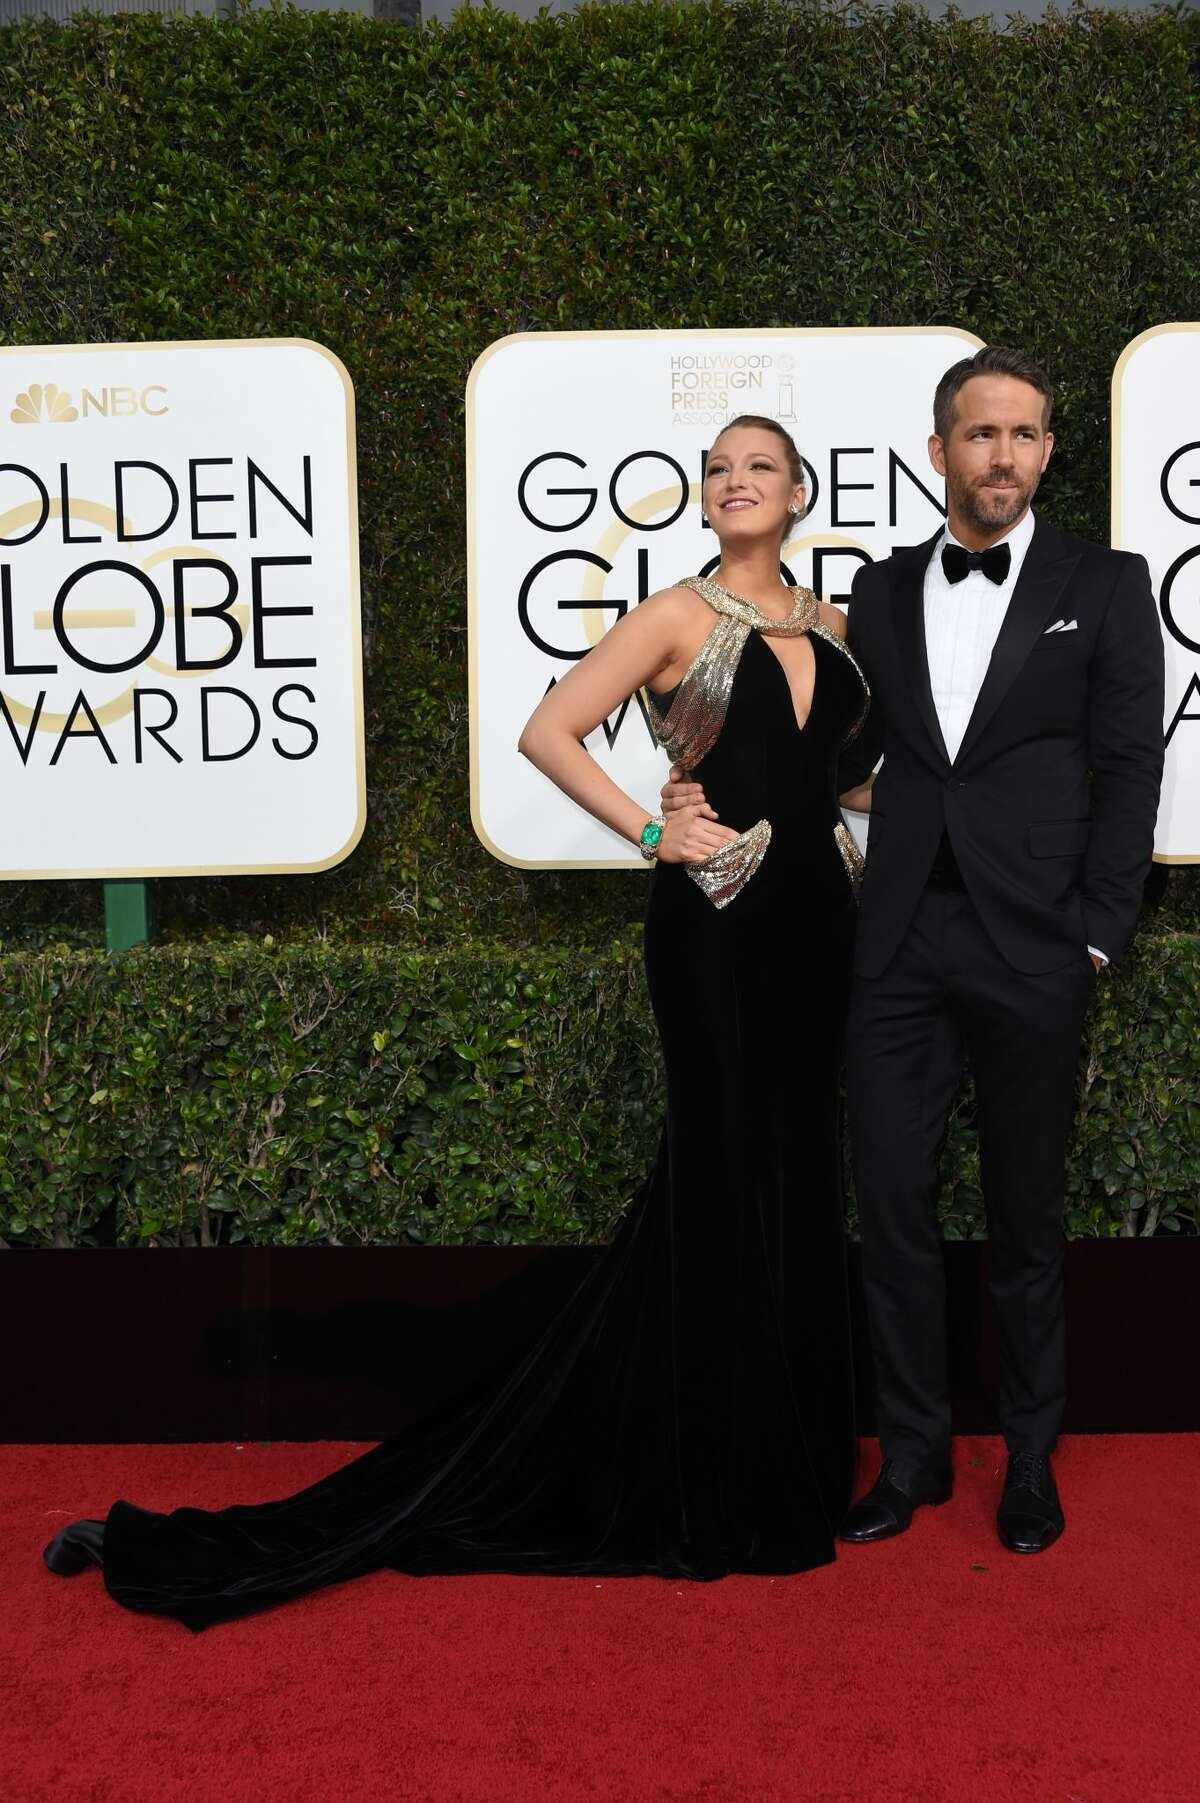 Actress Blake Lively and husband Ryan Reynolds arrive at the 74th annual Golden Globe Awards, January 8, 2017.